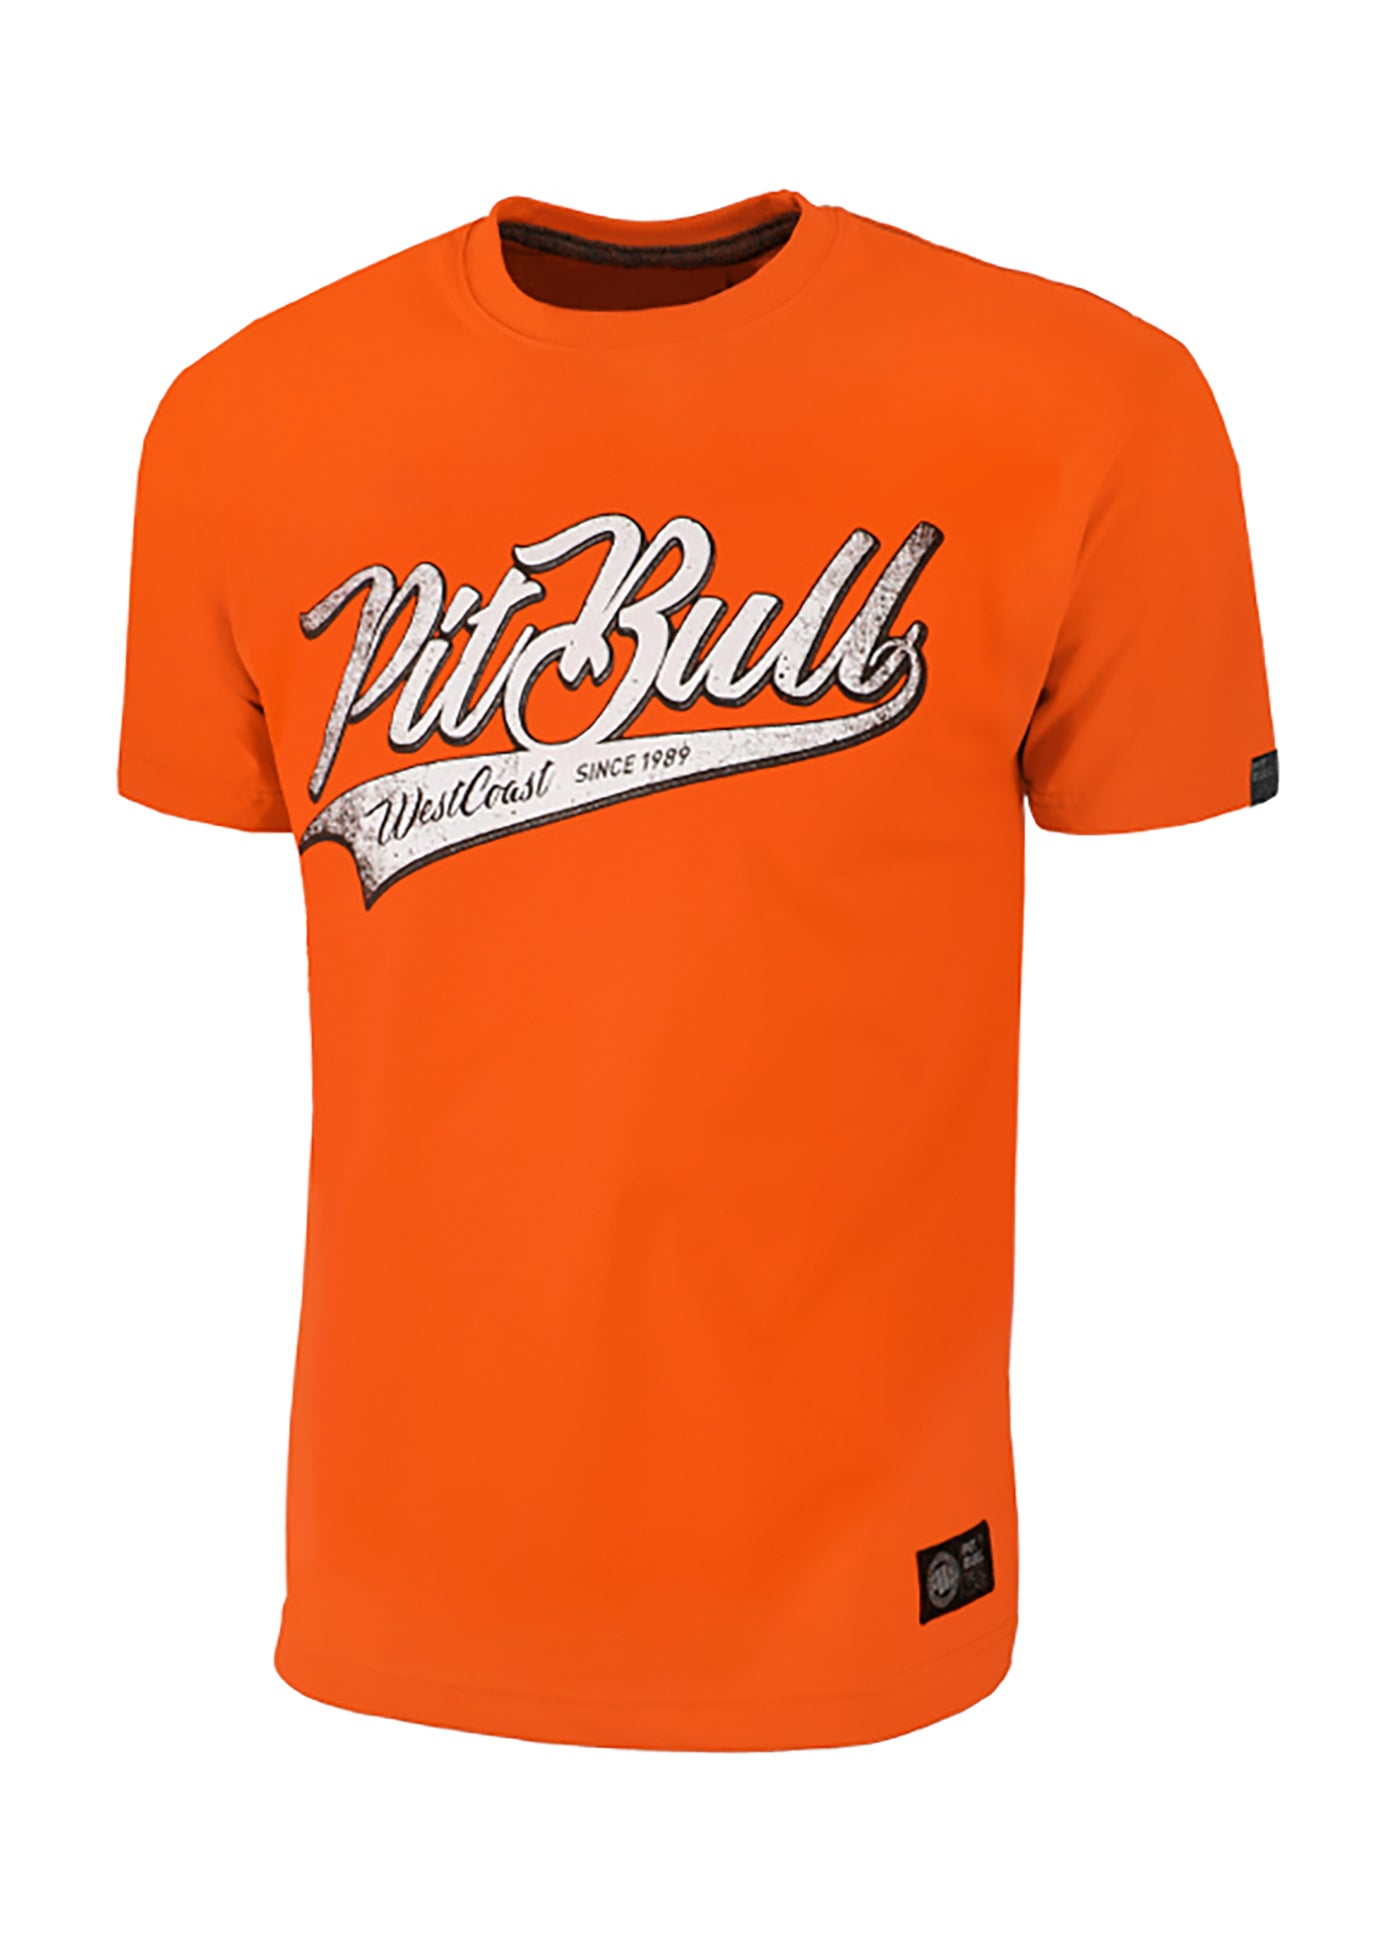 T-Shirt San Diego Dog Orange - pitbullwestcoast